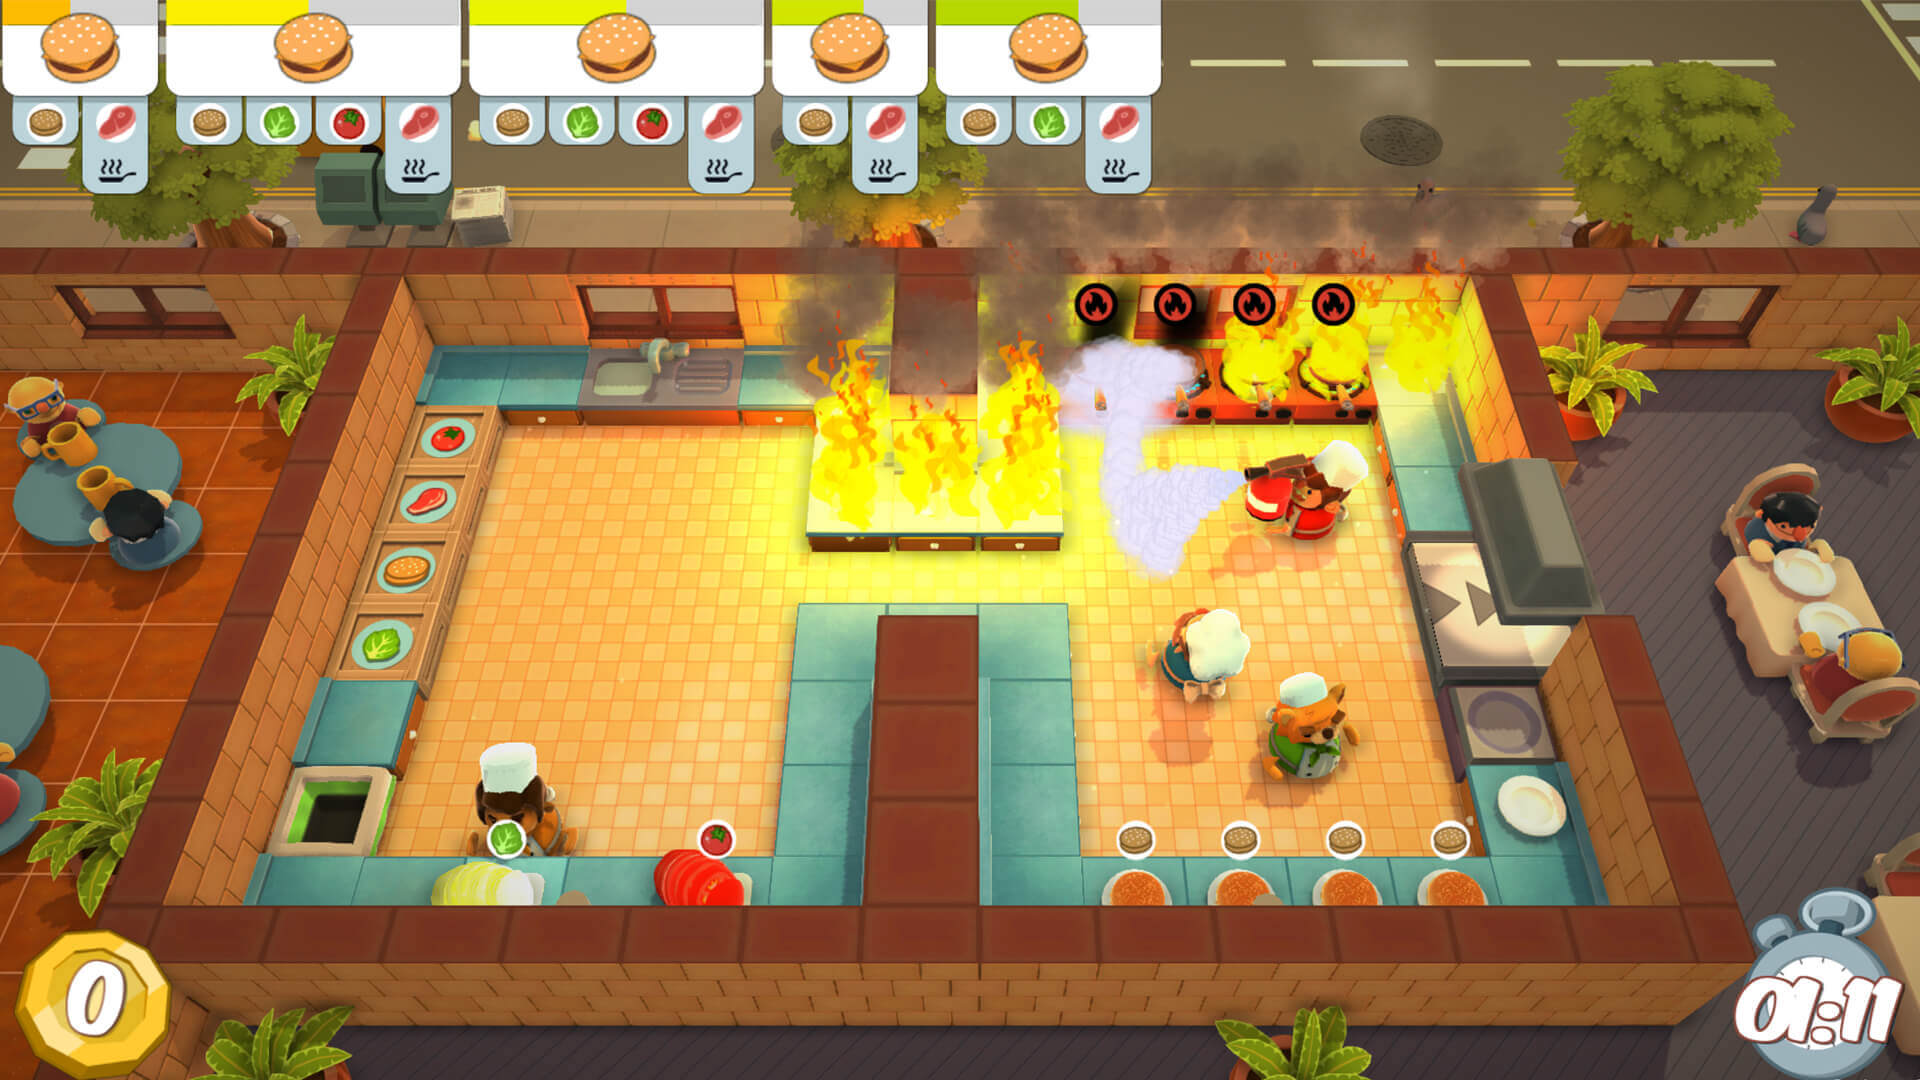 Claim Overcooked for free